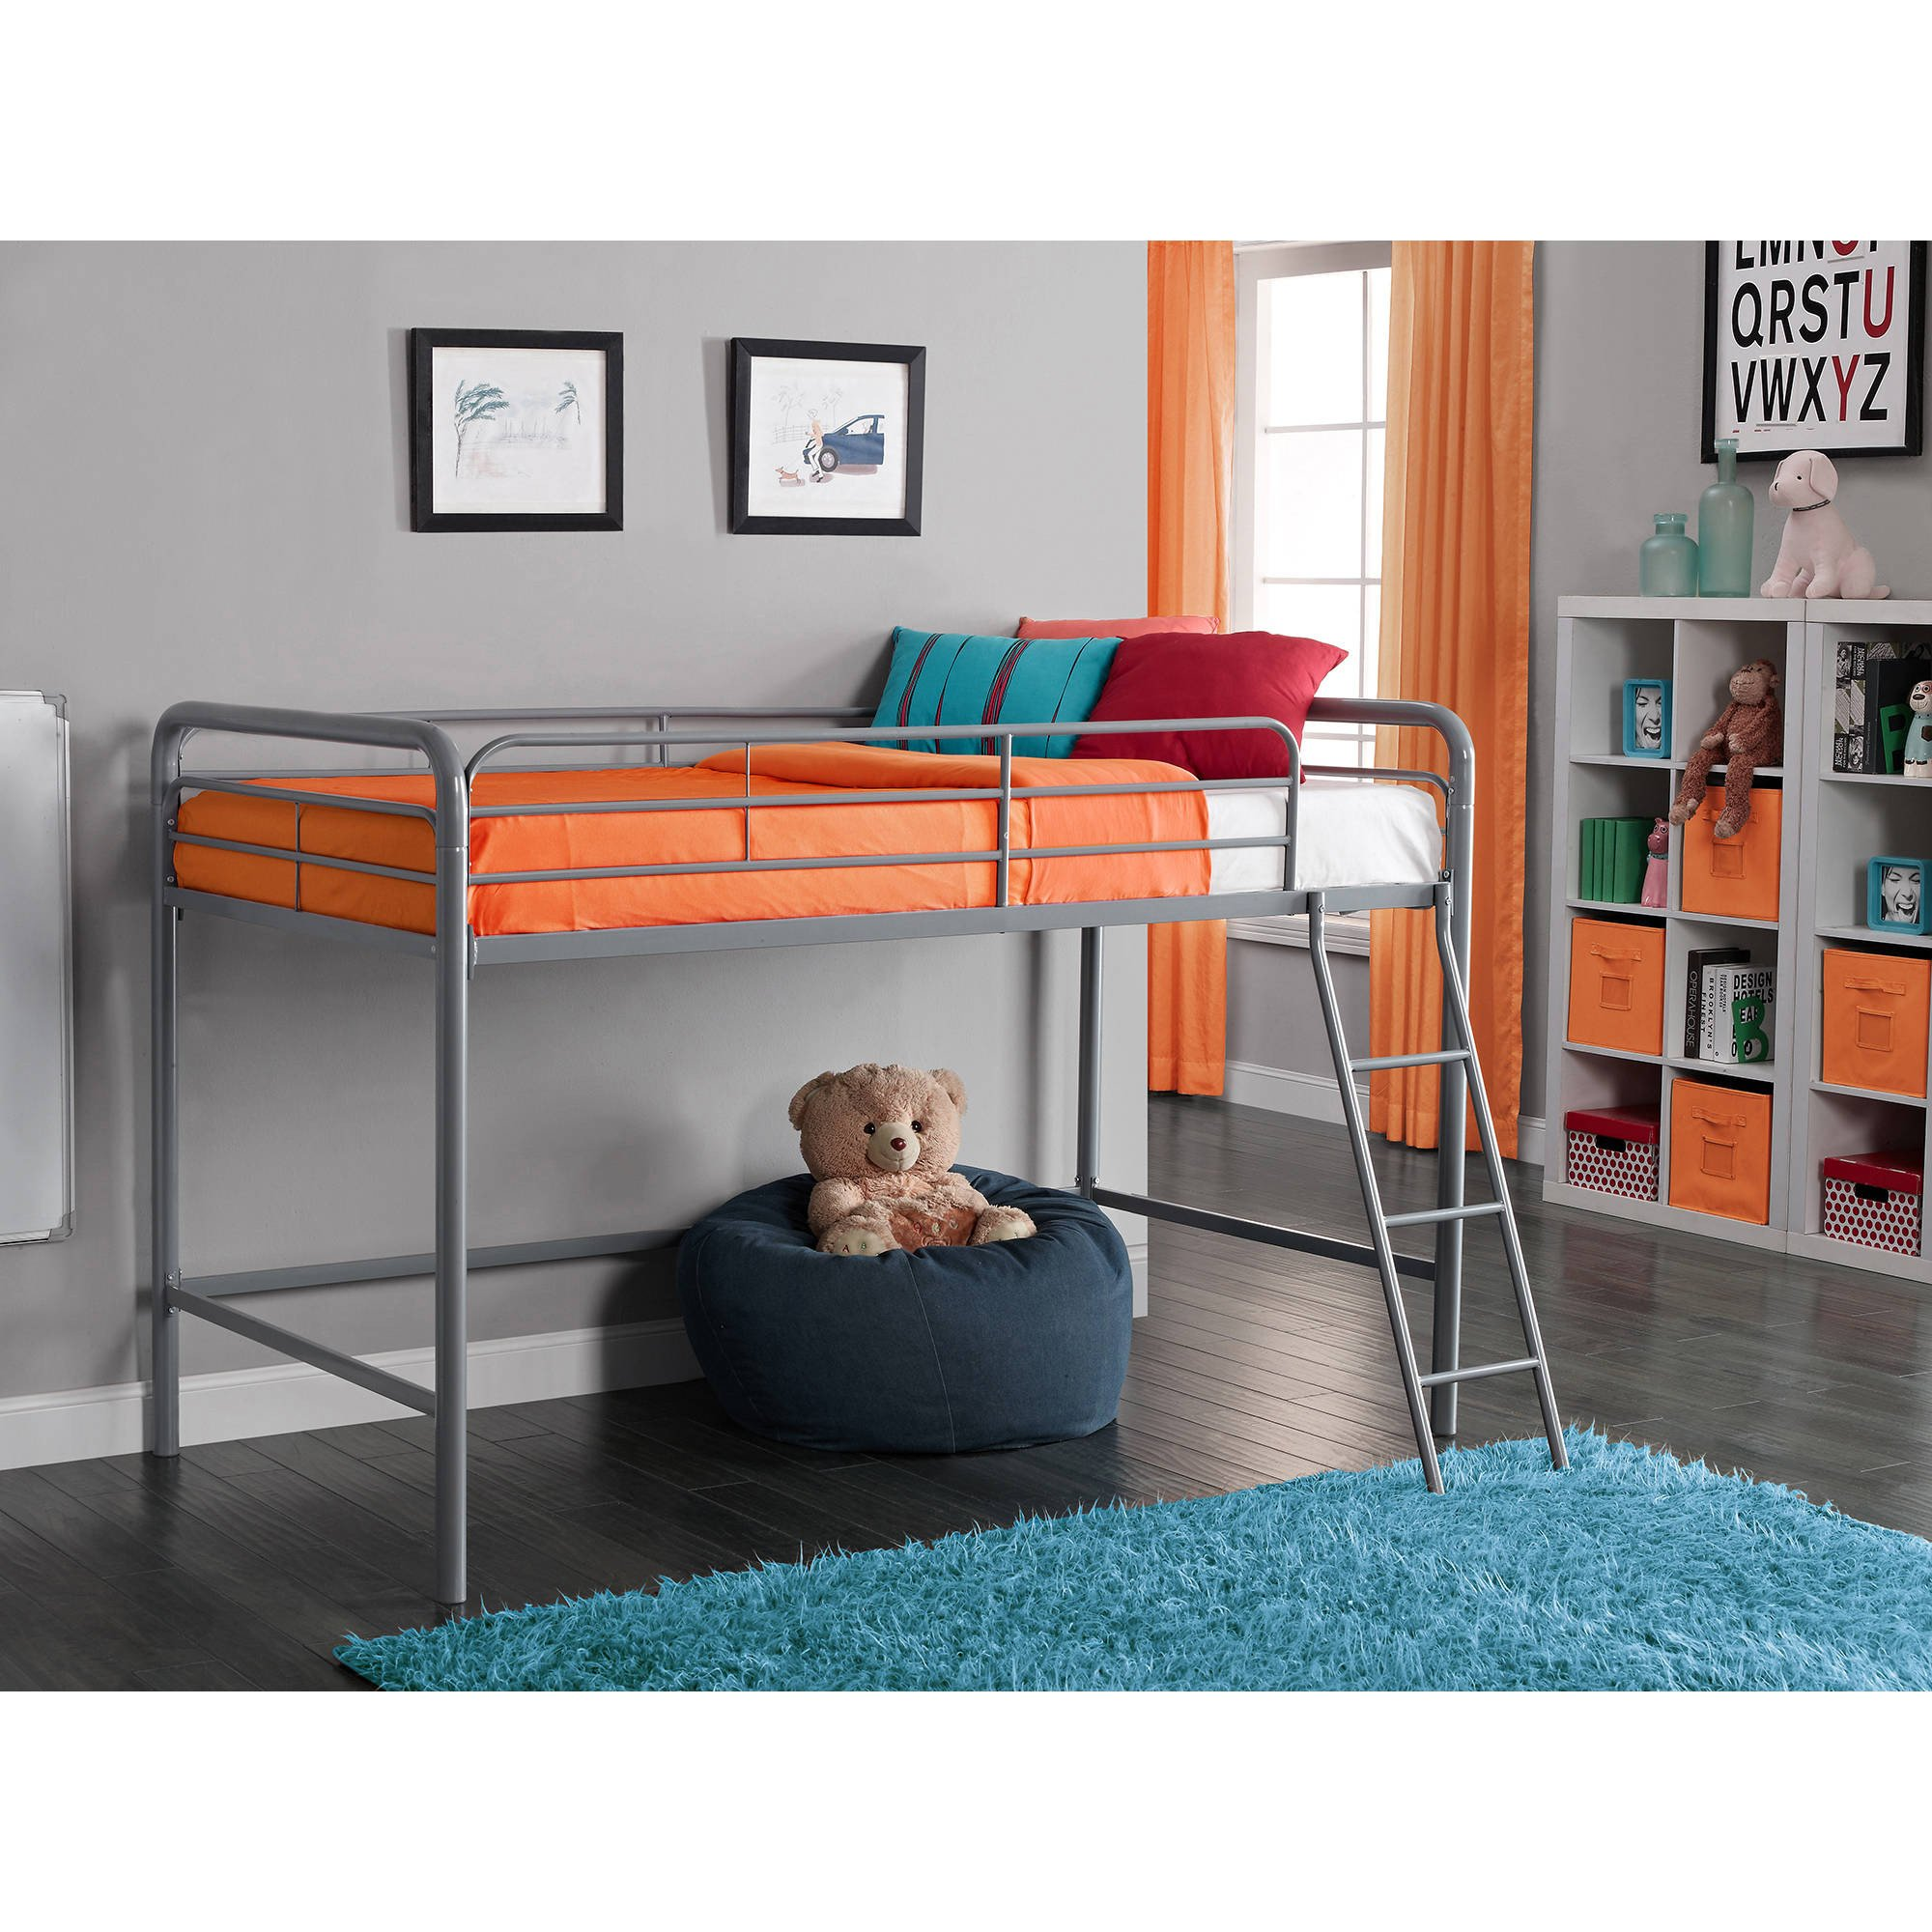 Wal Mart Bedroom Furniture Beautiful Inspirational Mid Century Modern Bunk Bed Pics — Beautiful